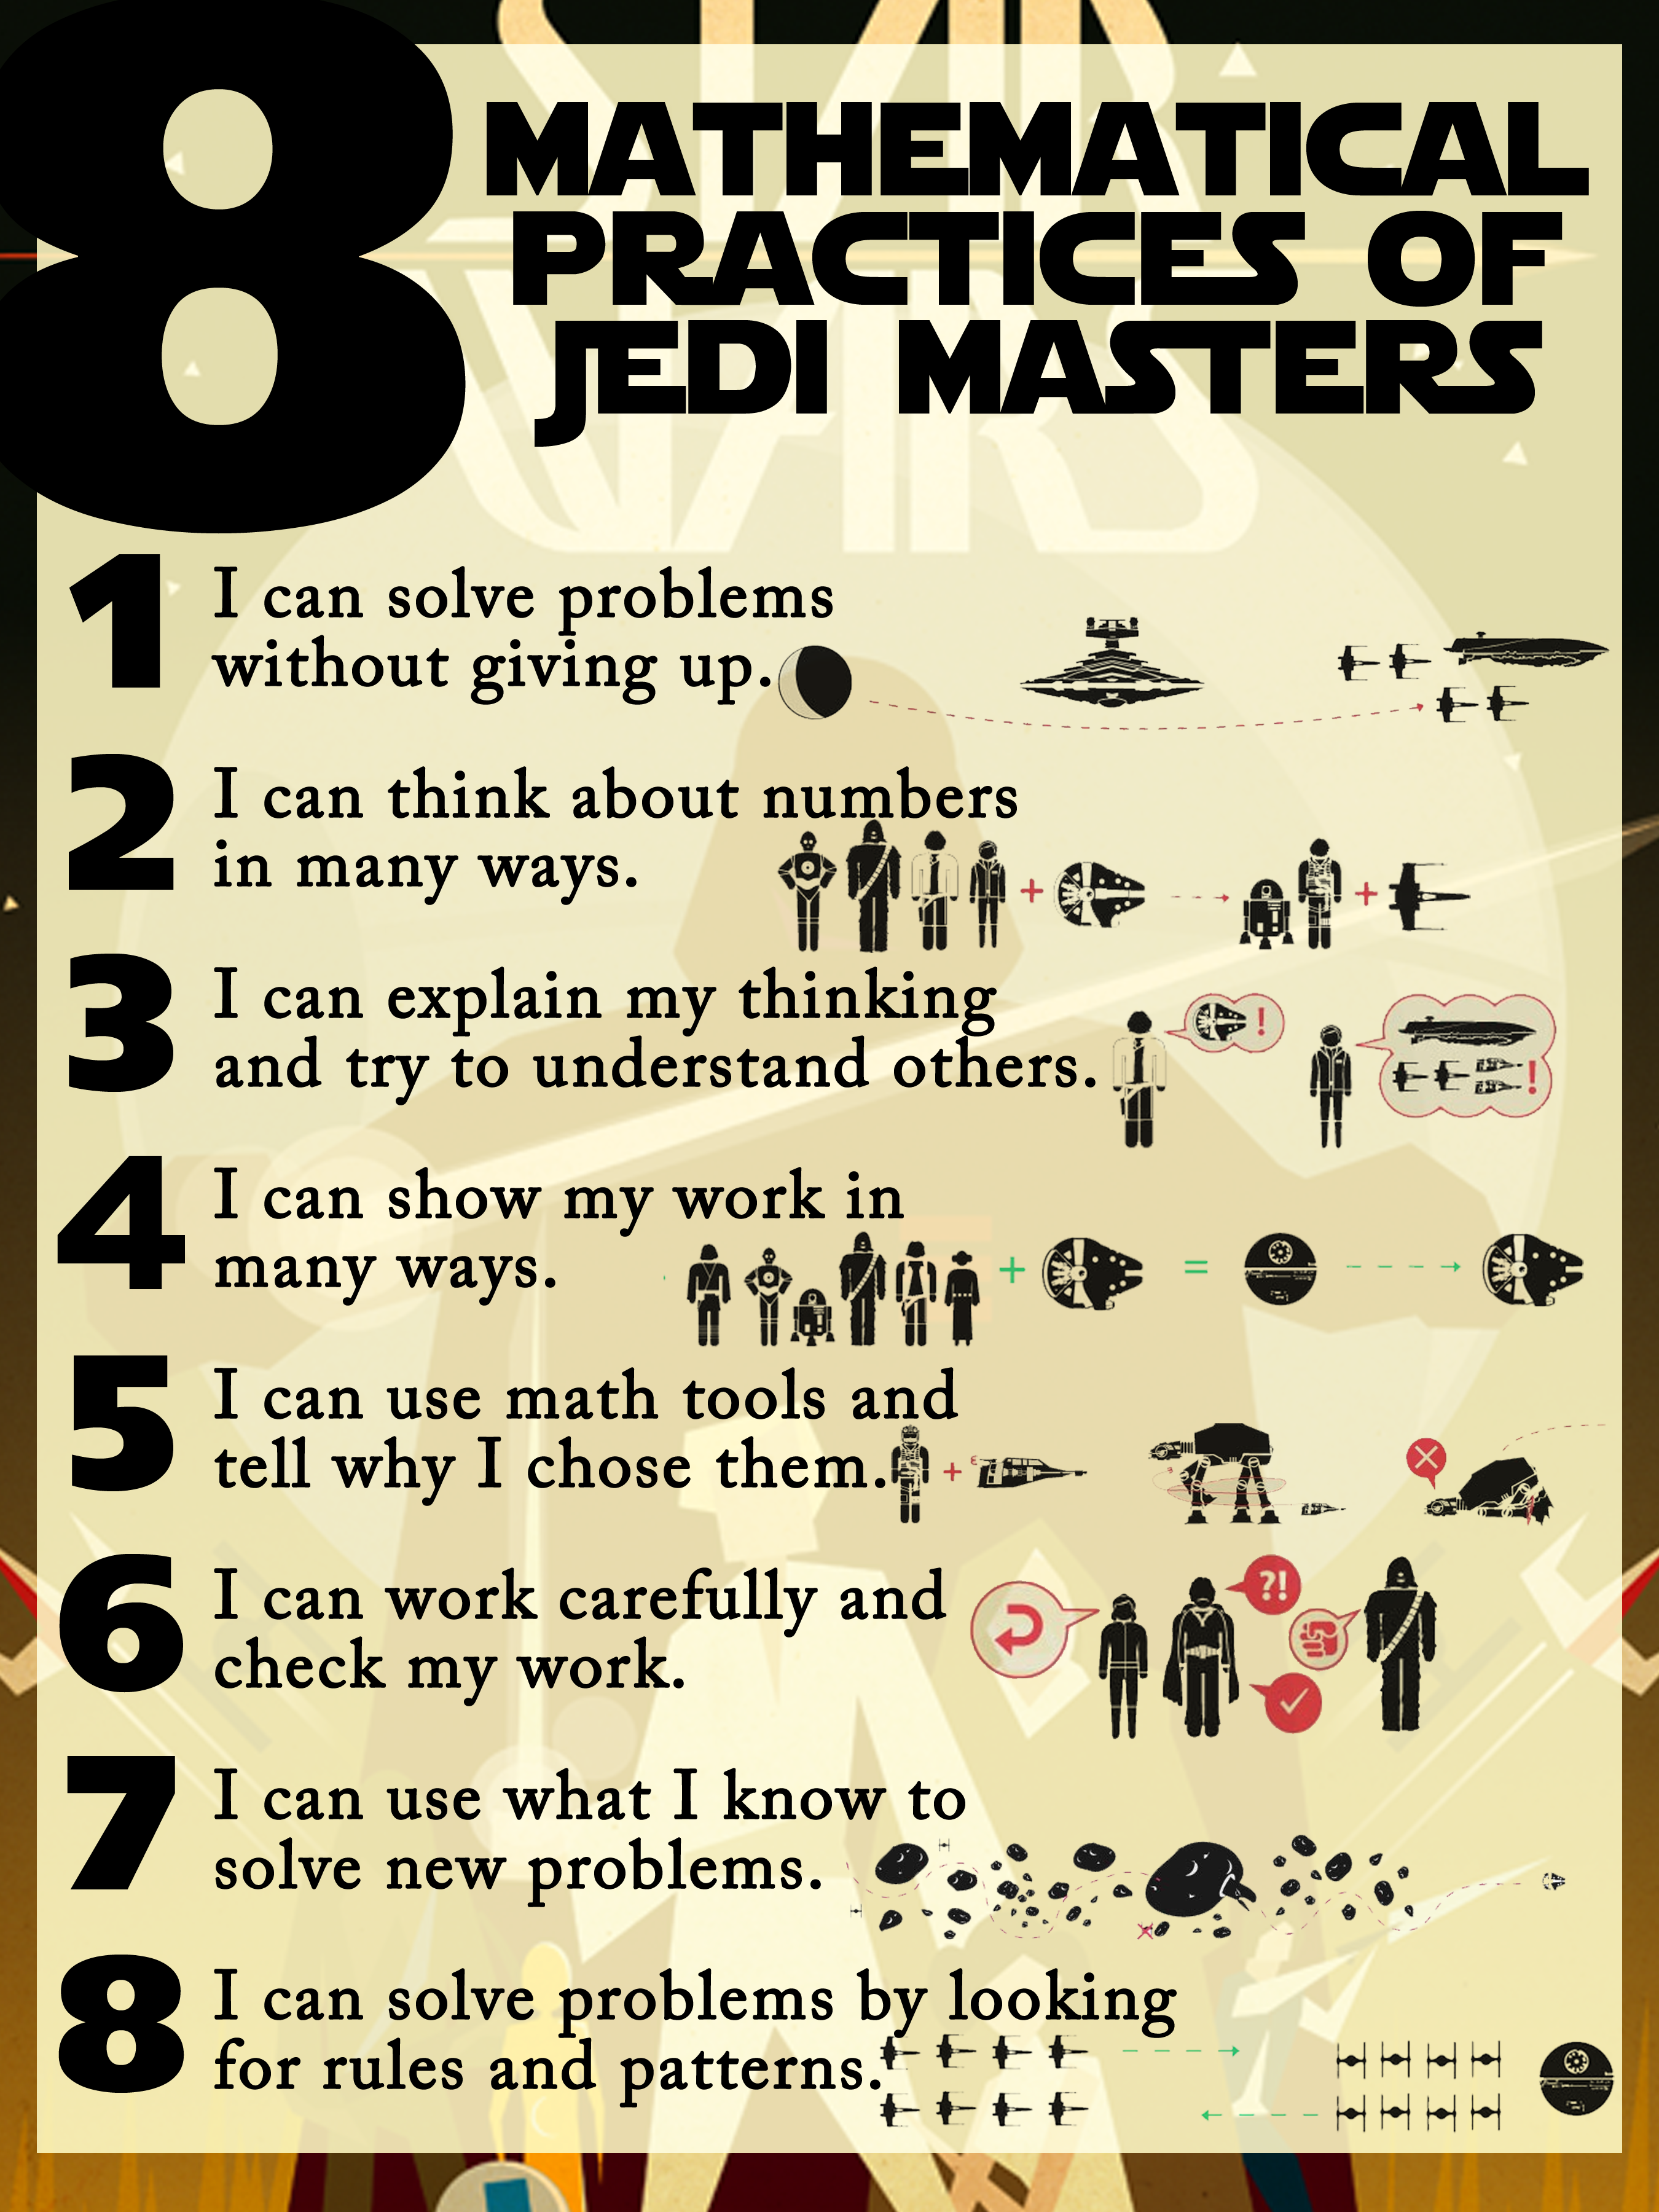 Star Wars Posters #mtbos #msmathchat | Math practices, Maths ...